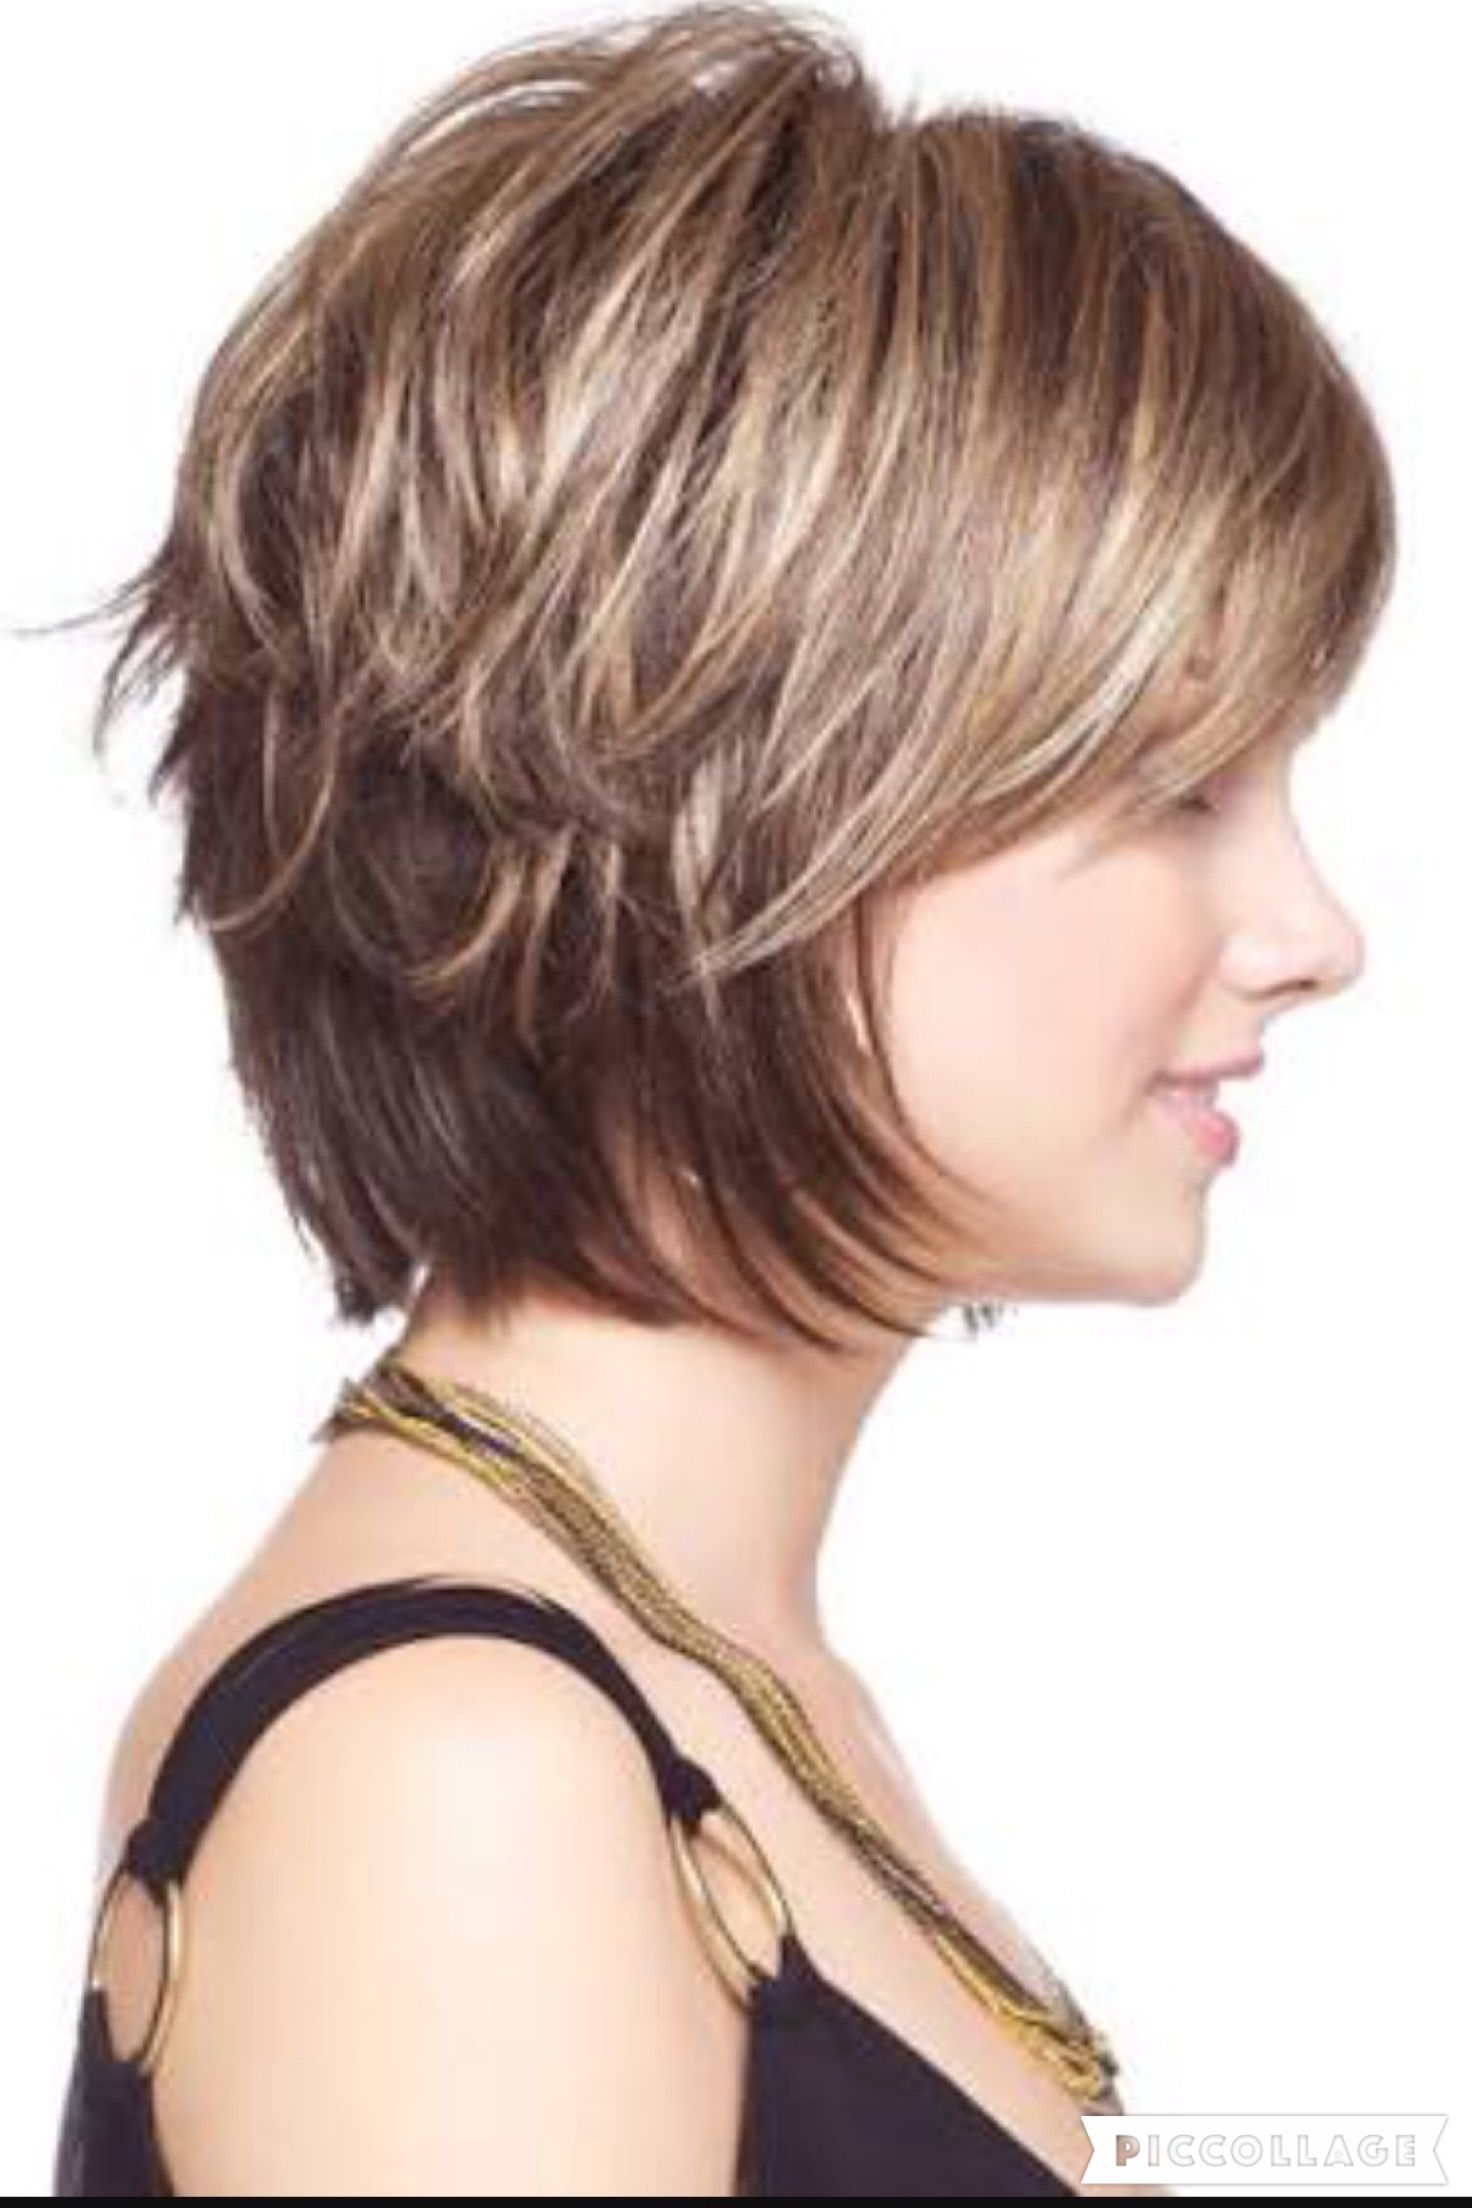 Diagonal Forward Hairstyles Bobs Colors And Curls On